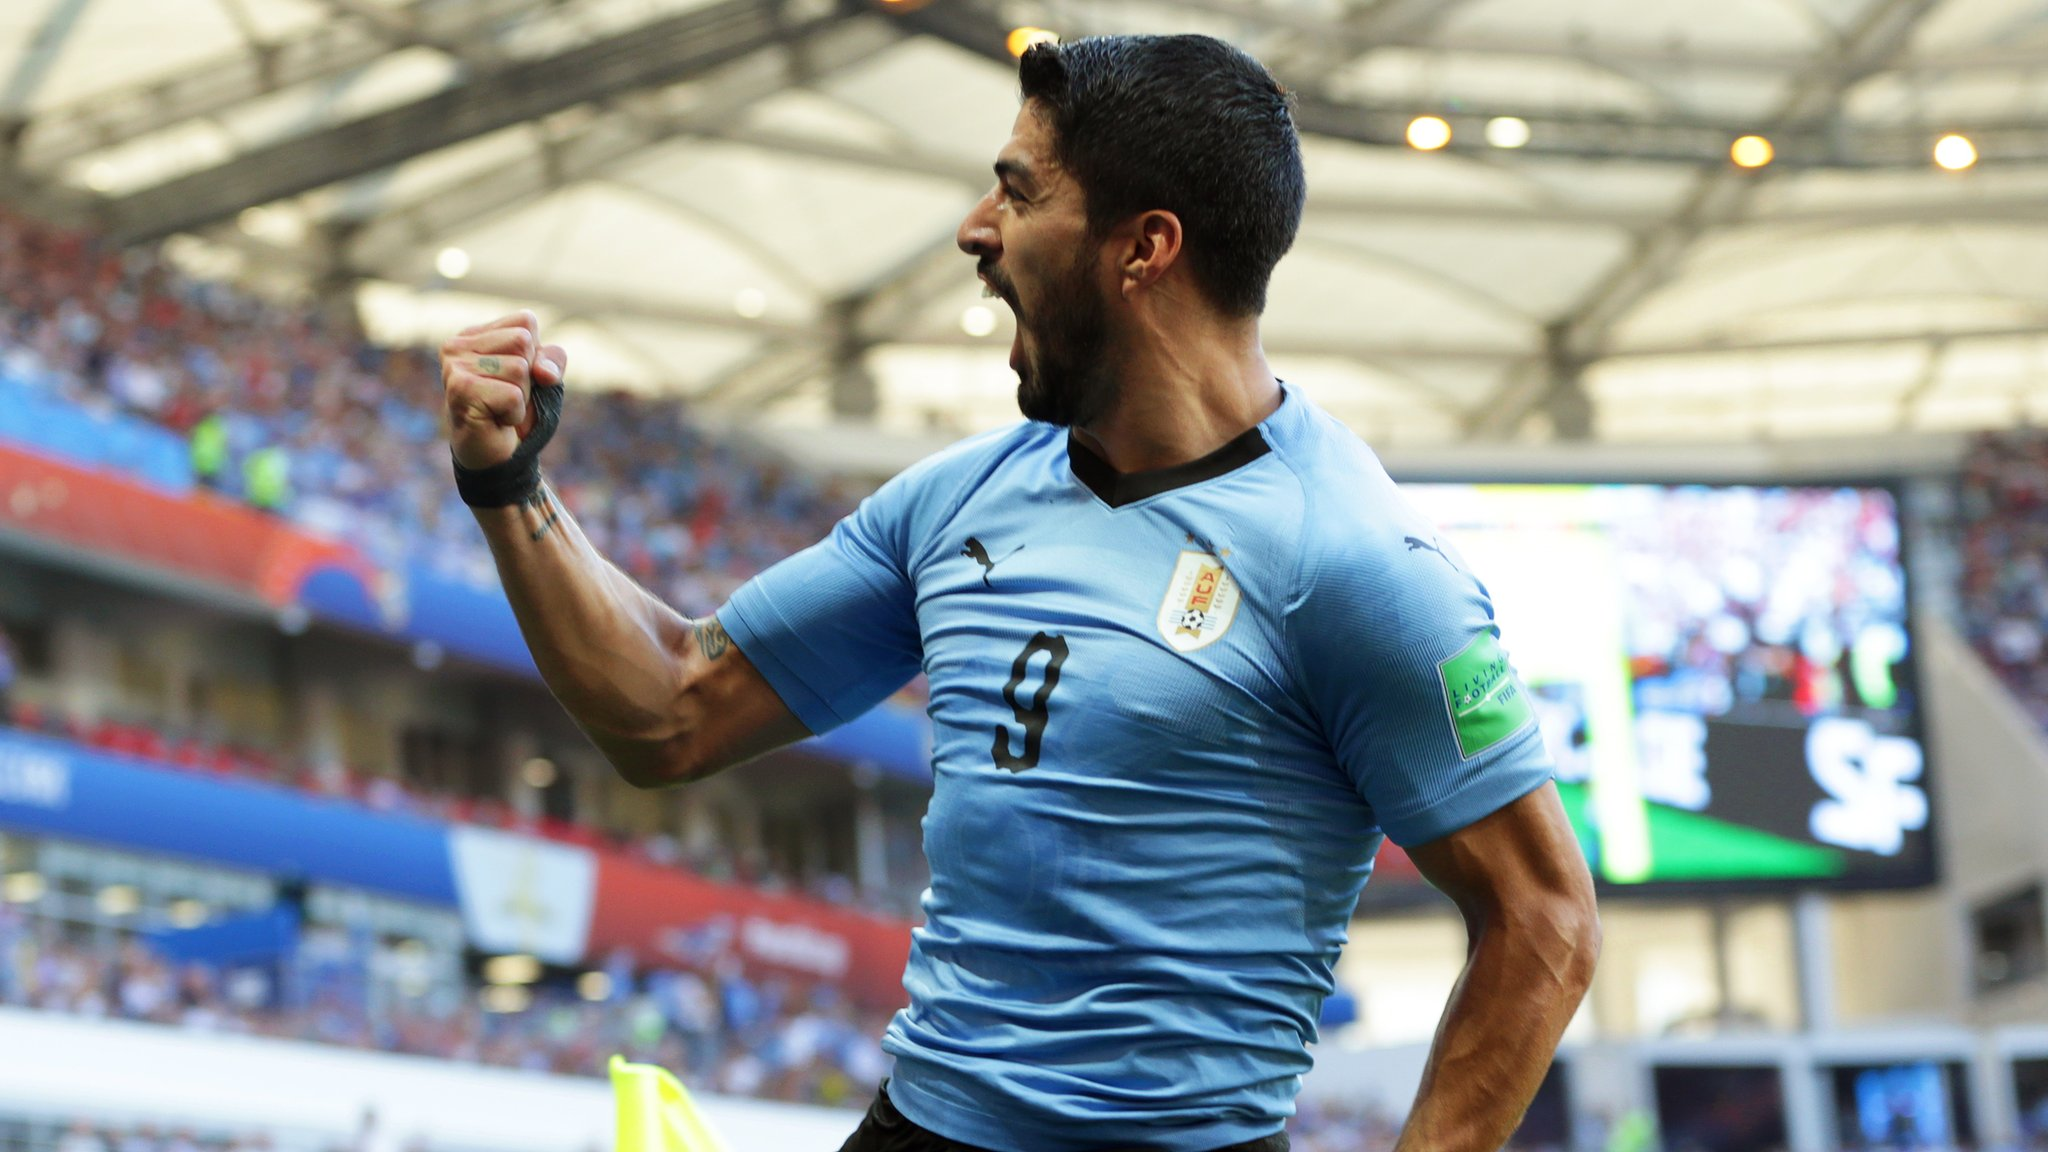 Watch: Suarez celebrates 100th cap with a goal